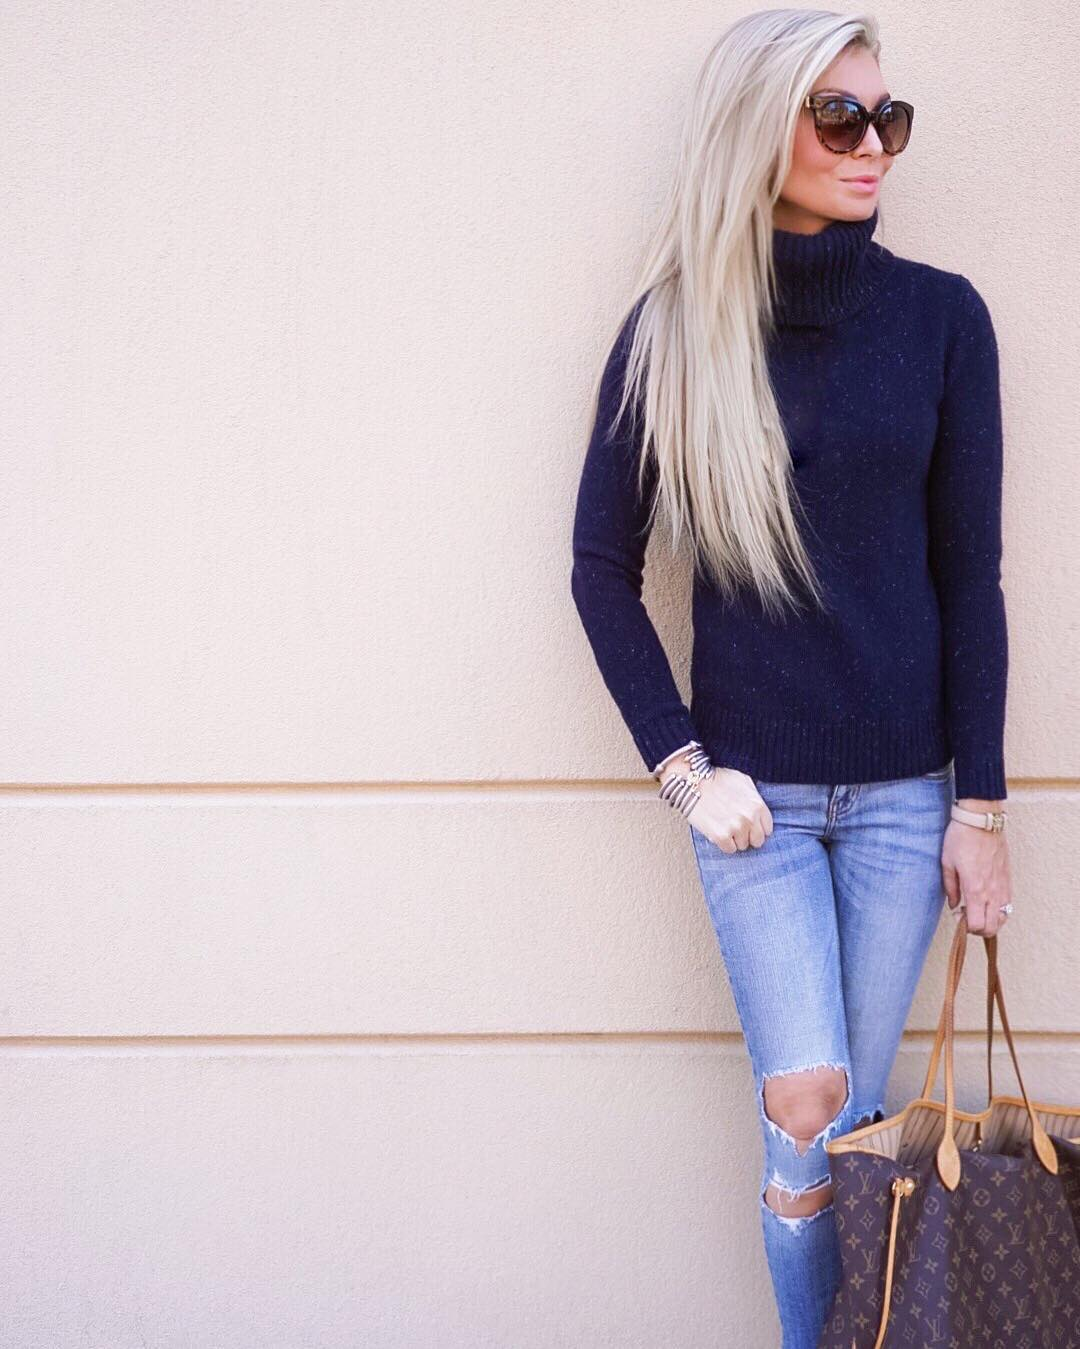 Casual Friday! ✌️ Perfect comfy combo for Chinese takeout and ice cream with my little babe! // This sweater is SO soft! #youneedit http://liketk.it/2pDJj #liketkit #liketkunder100 #sweaterweather #wiw #ootd #rippedjeansarelife #tgif